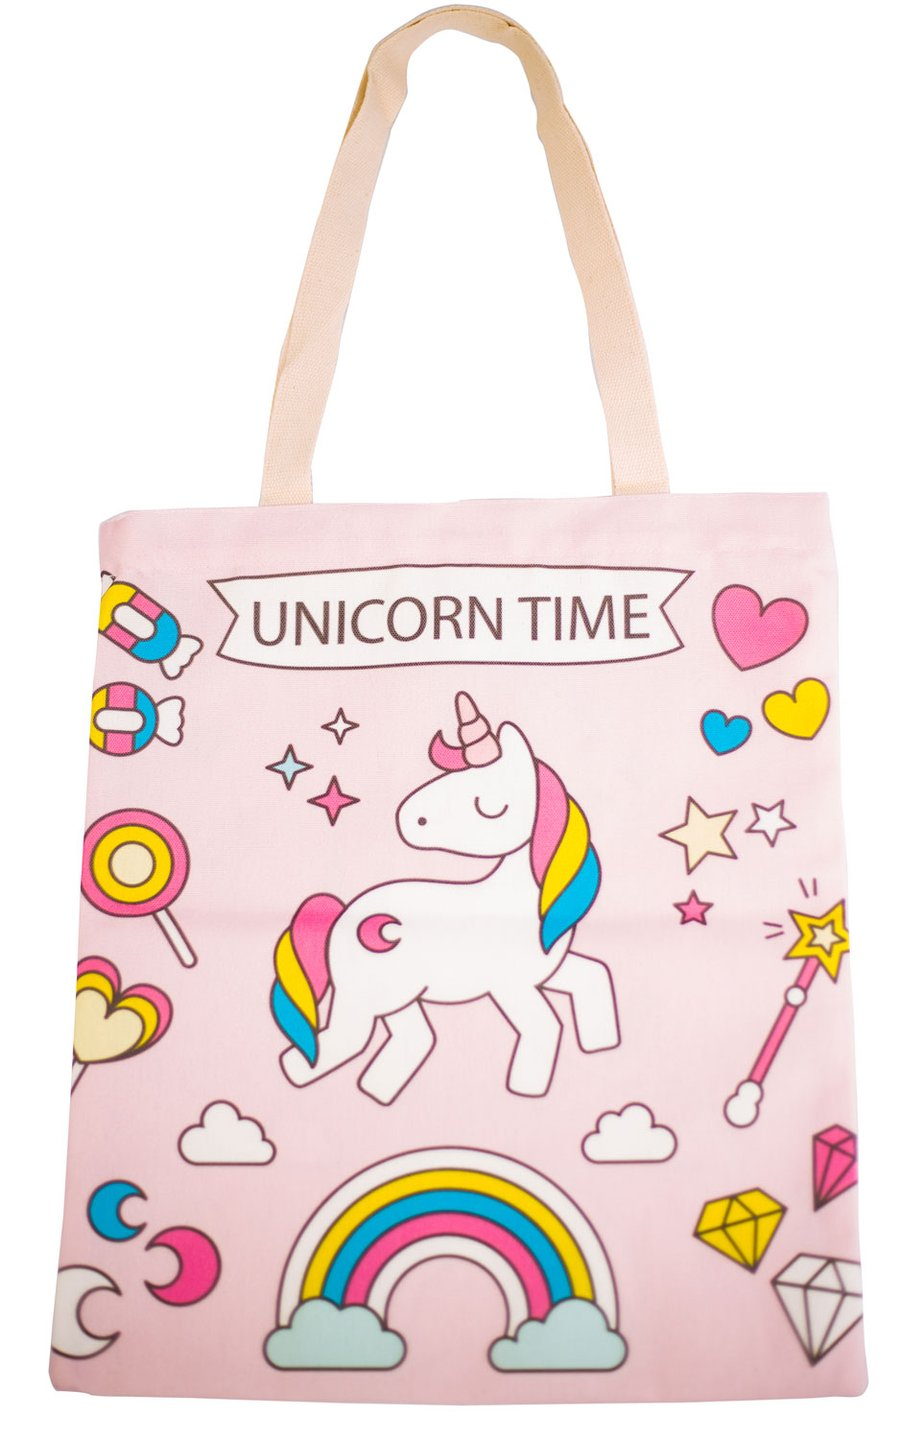 Unicorn Time Tote Bag With Zipper - Cherry Cherry